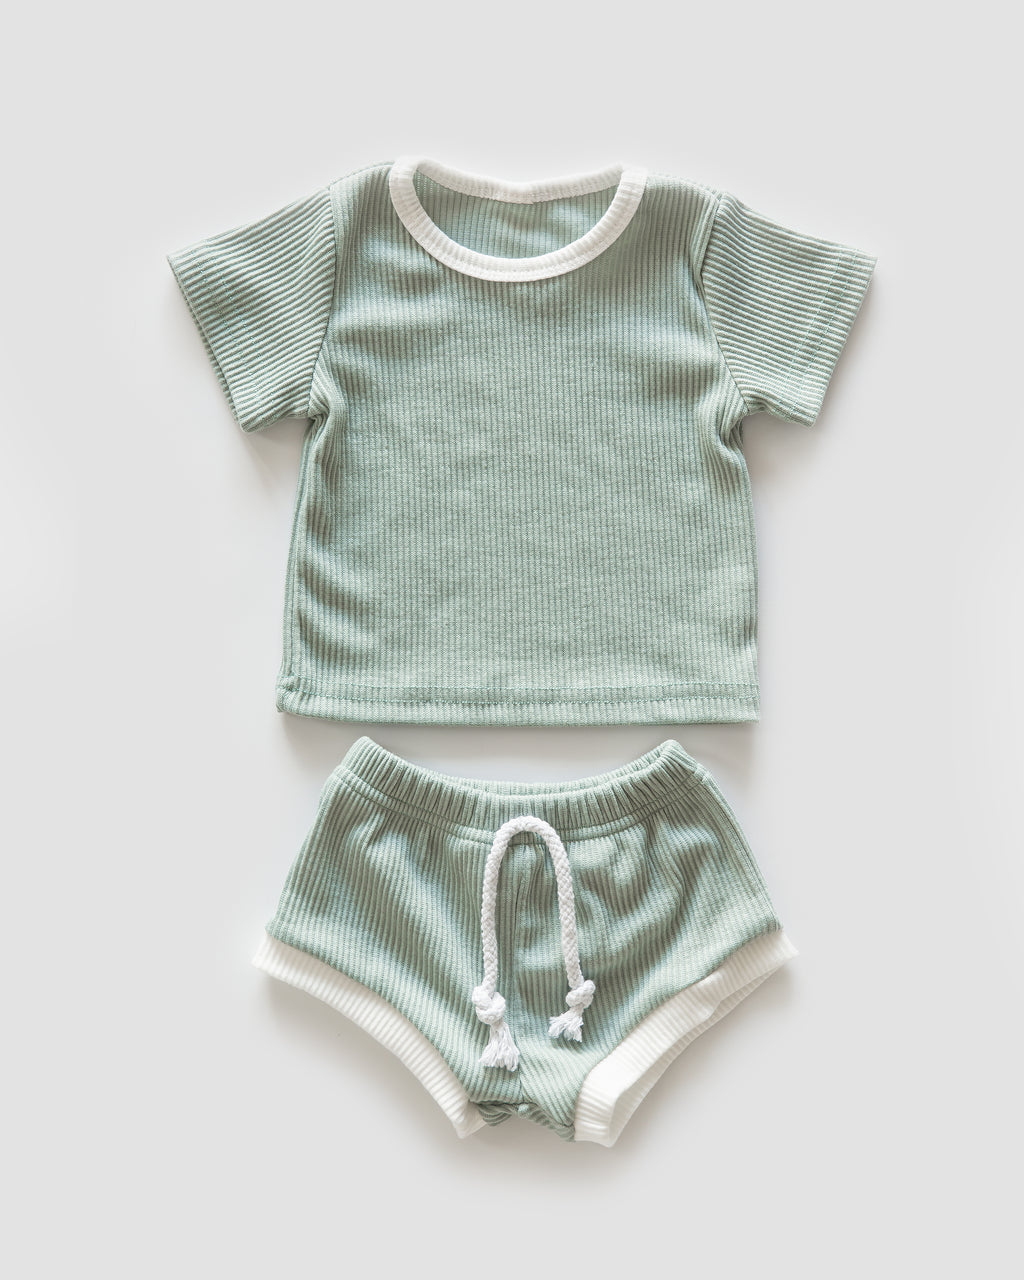 Ribbed Cozies in Seafoam & White Trim - Reverie Threads